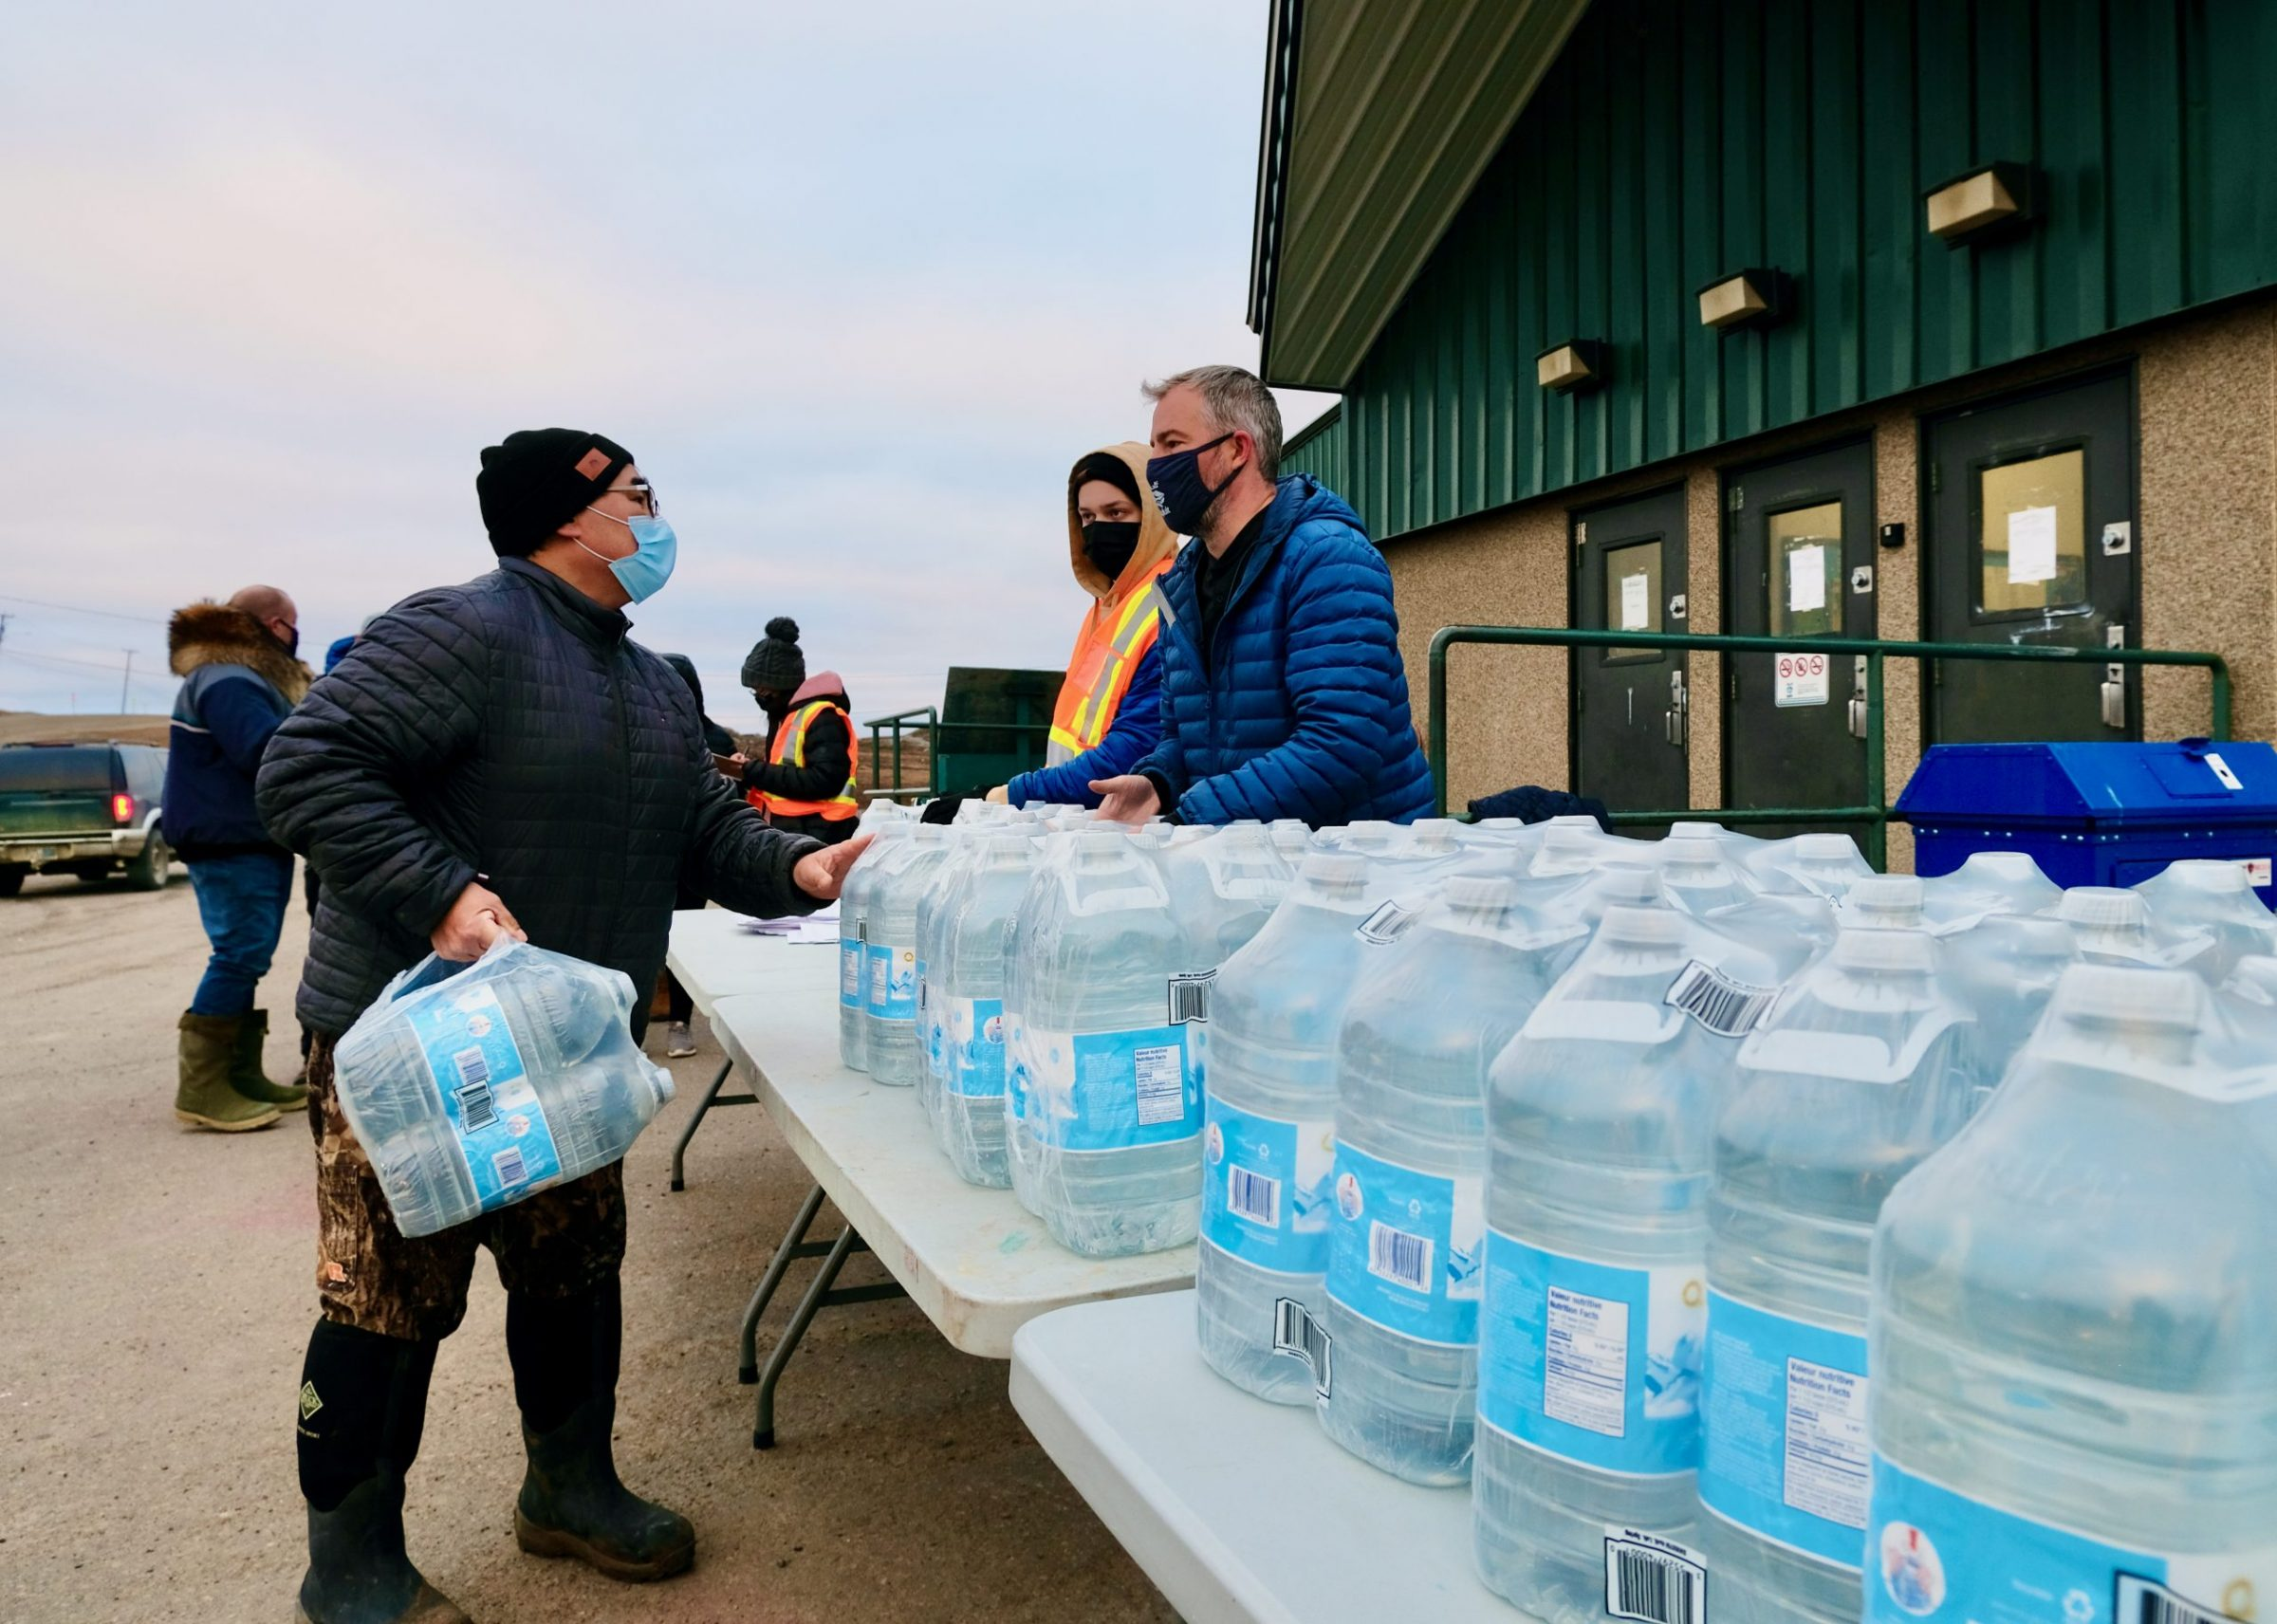 Iqaluit Mayor Kenny Bell, right, helps distribute jugs of water at the Arctic Winter Games Arena parking lot on Thursday, following the arrival of several thousand litres of of drinkable water on an afternoon flight. There is a second water distribution centre set up at the Arnaitok Arena parking lot. Both centres are open from 3:30 p.m. until 8 p.m. Residents are able to take four litres per household. Residents were told earlier in the week to not drink tap water because of potential fuel contamination. (Photo by Mélanie Ritchot)